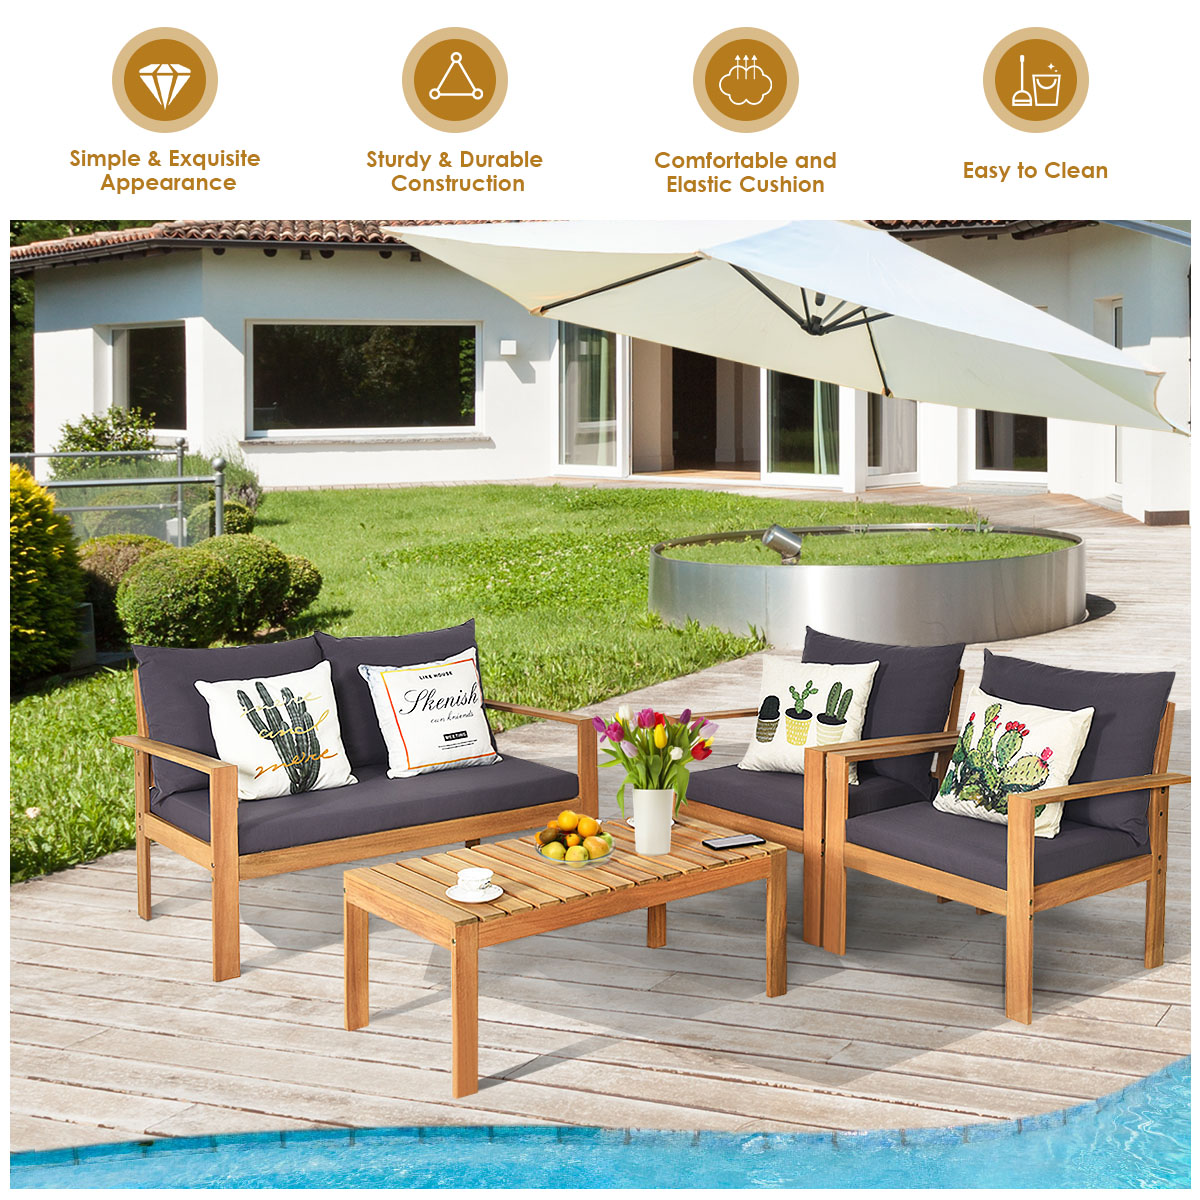 gymax 4pcs cushioned wooden conversation set patio outdoor furniture set